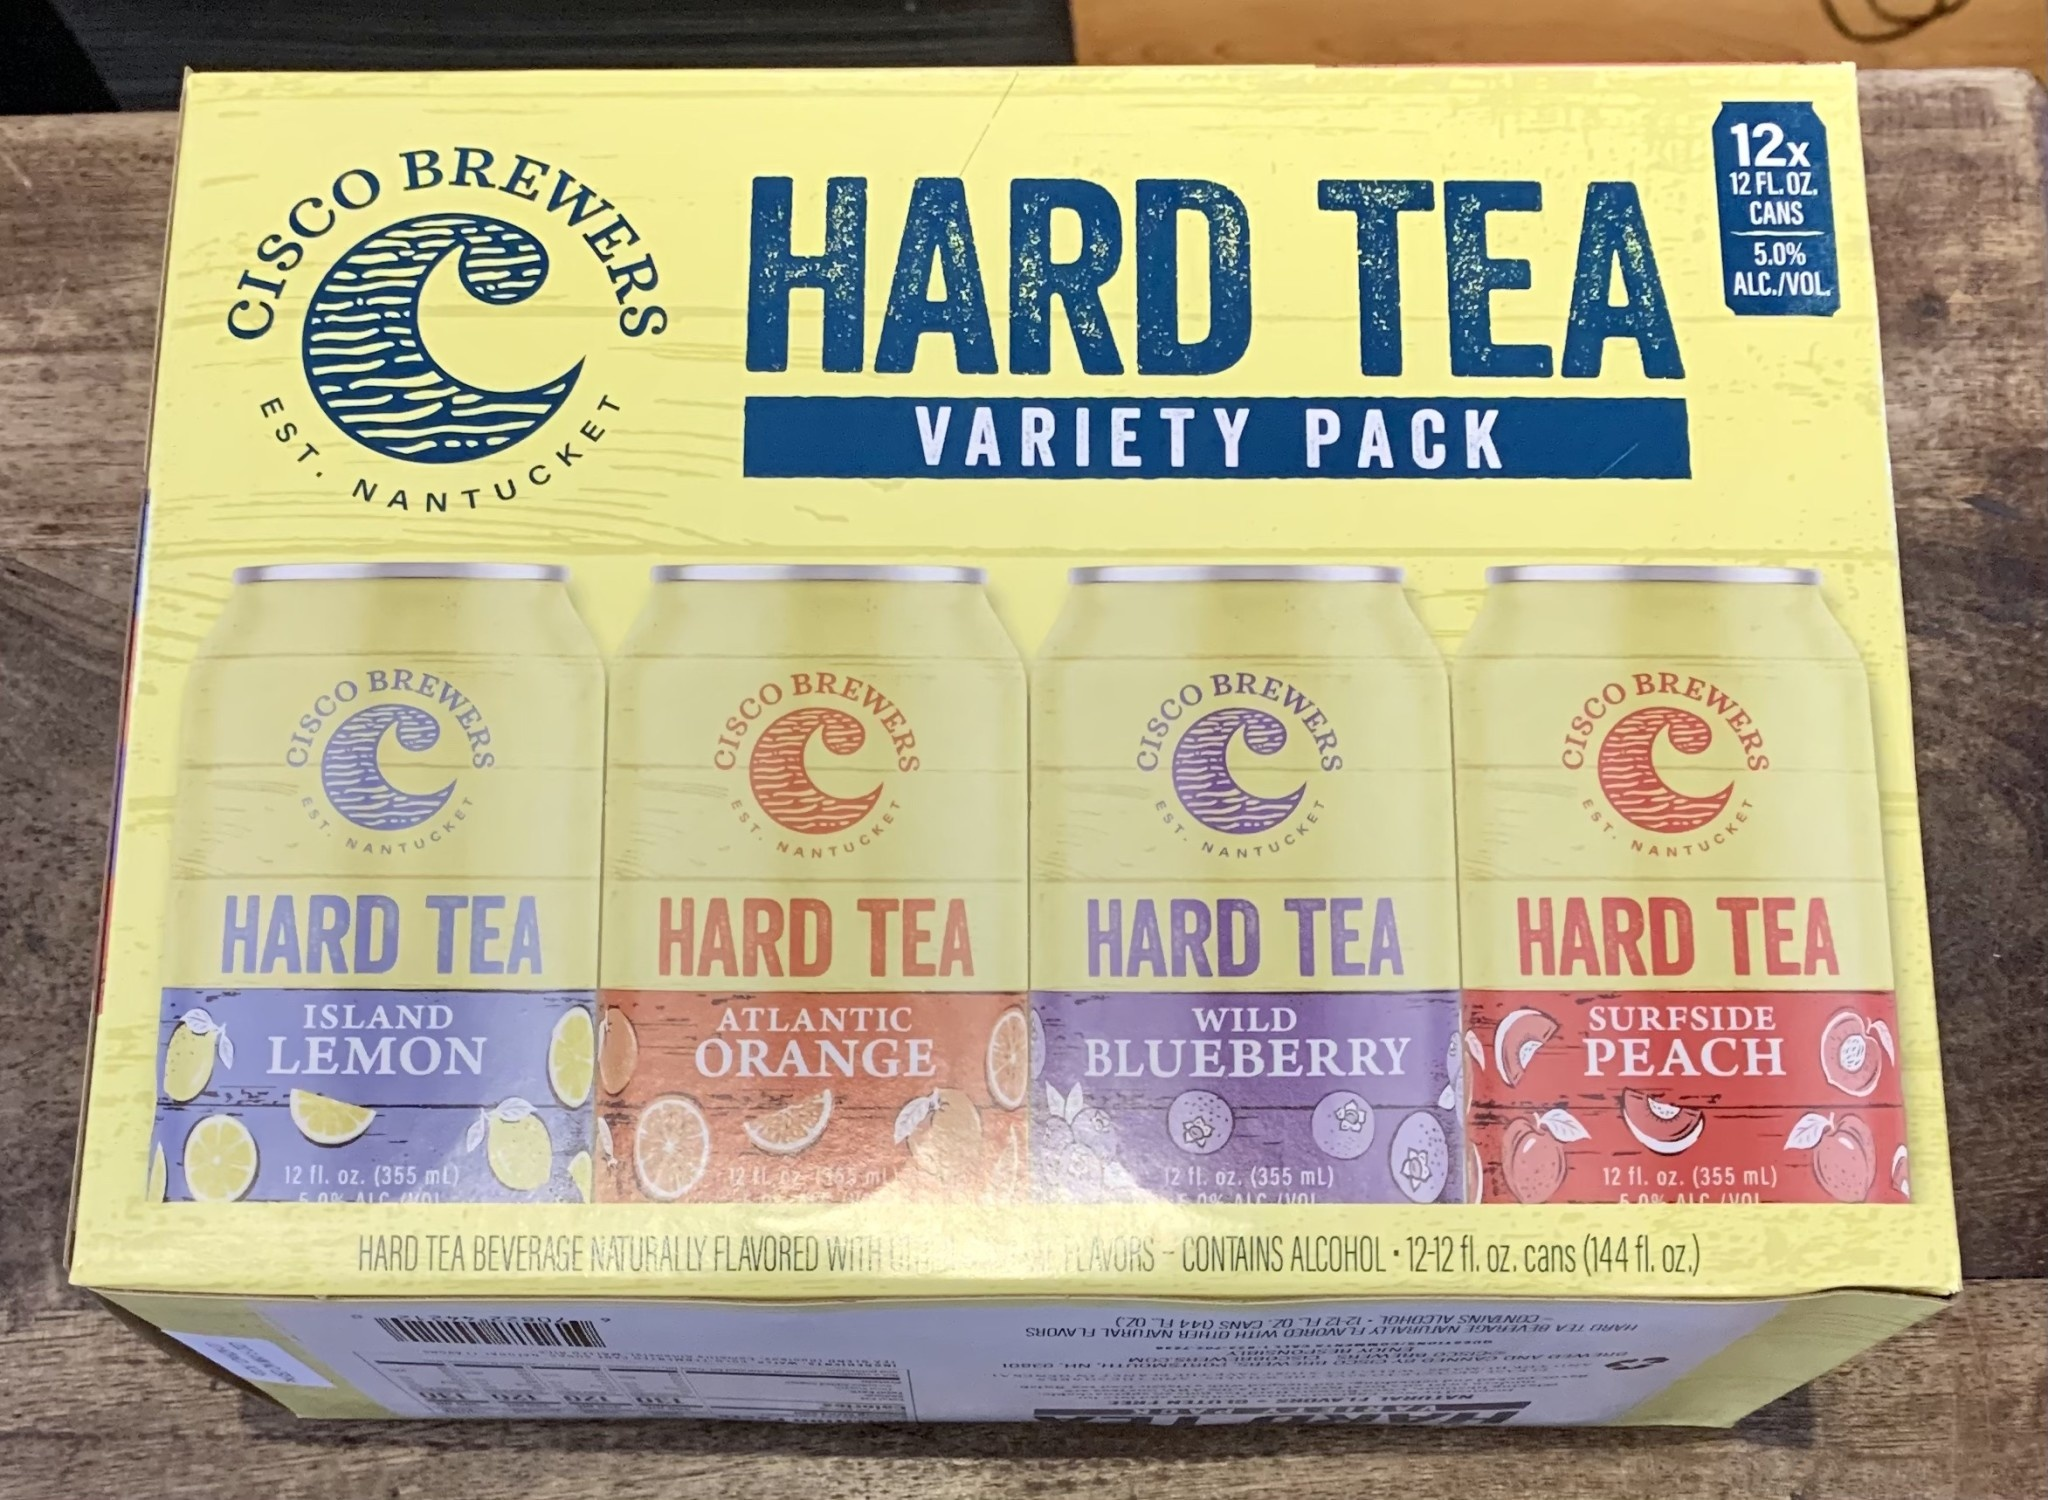 Cisco Brewers Hard Tea Variety Pack Cans 12pk - 12oz